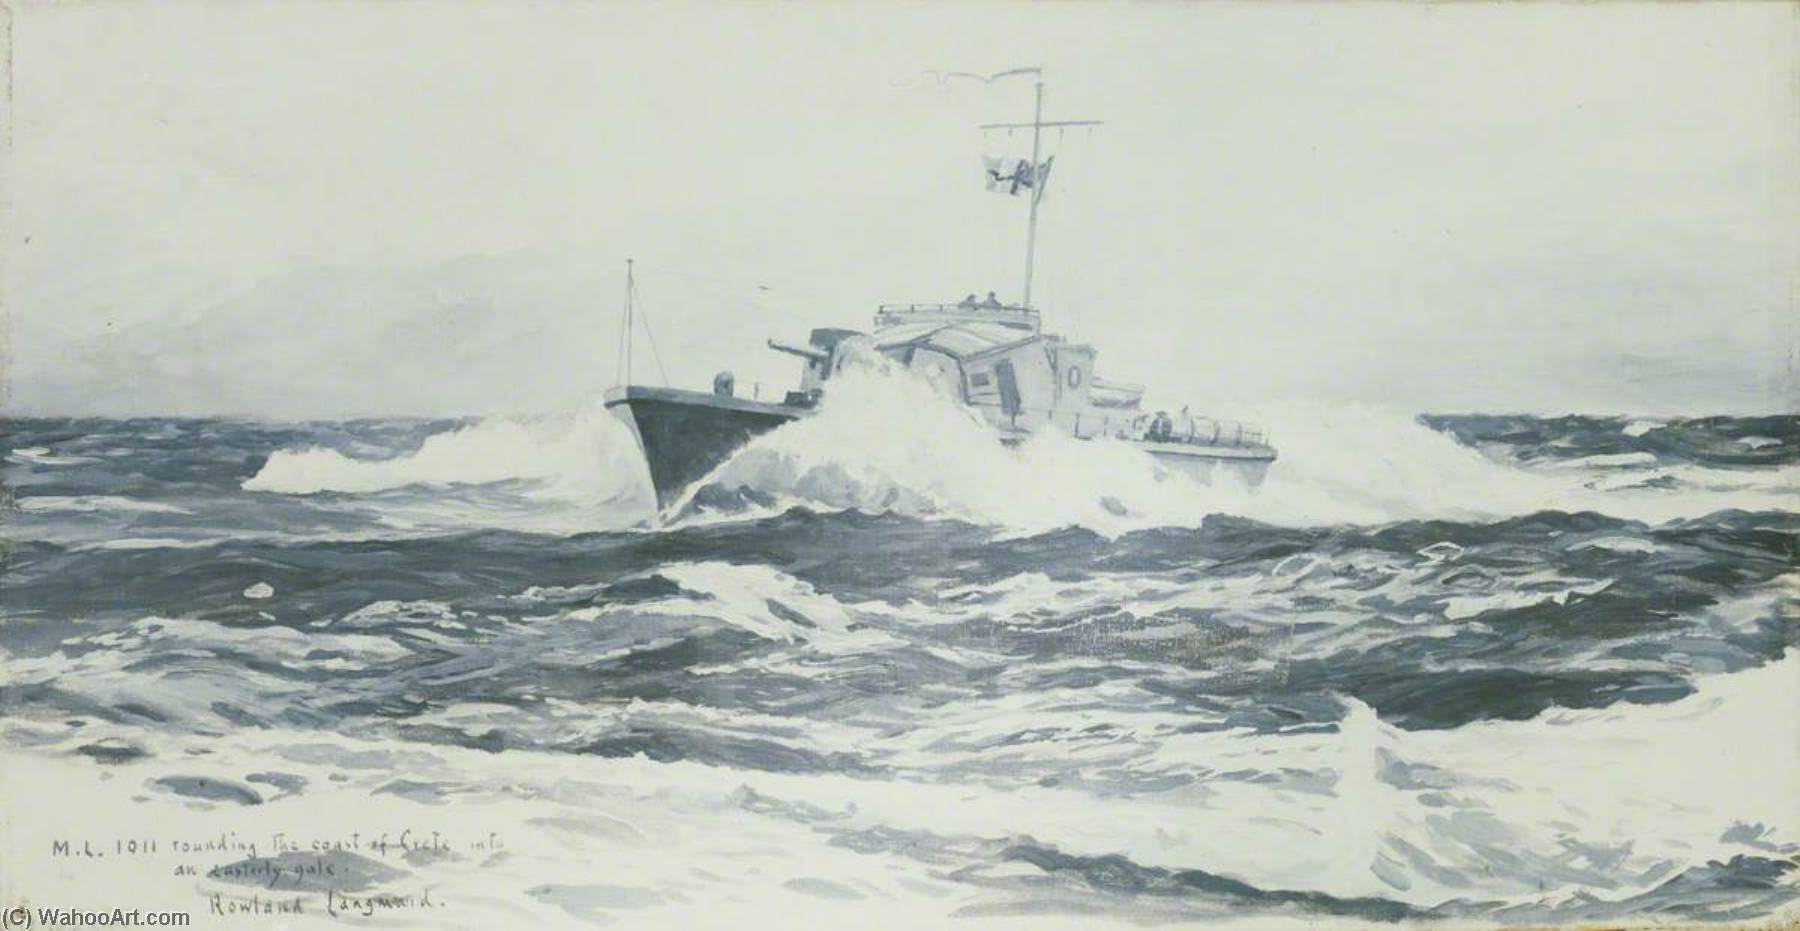 ML 1011 off Crete, Oil On Canvas by Rowland Langmaid